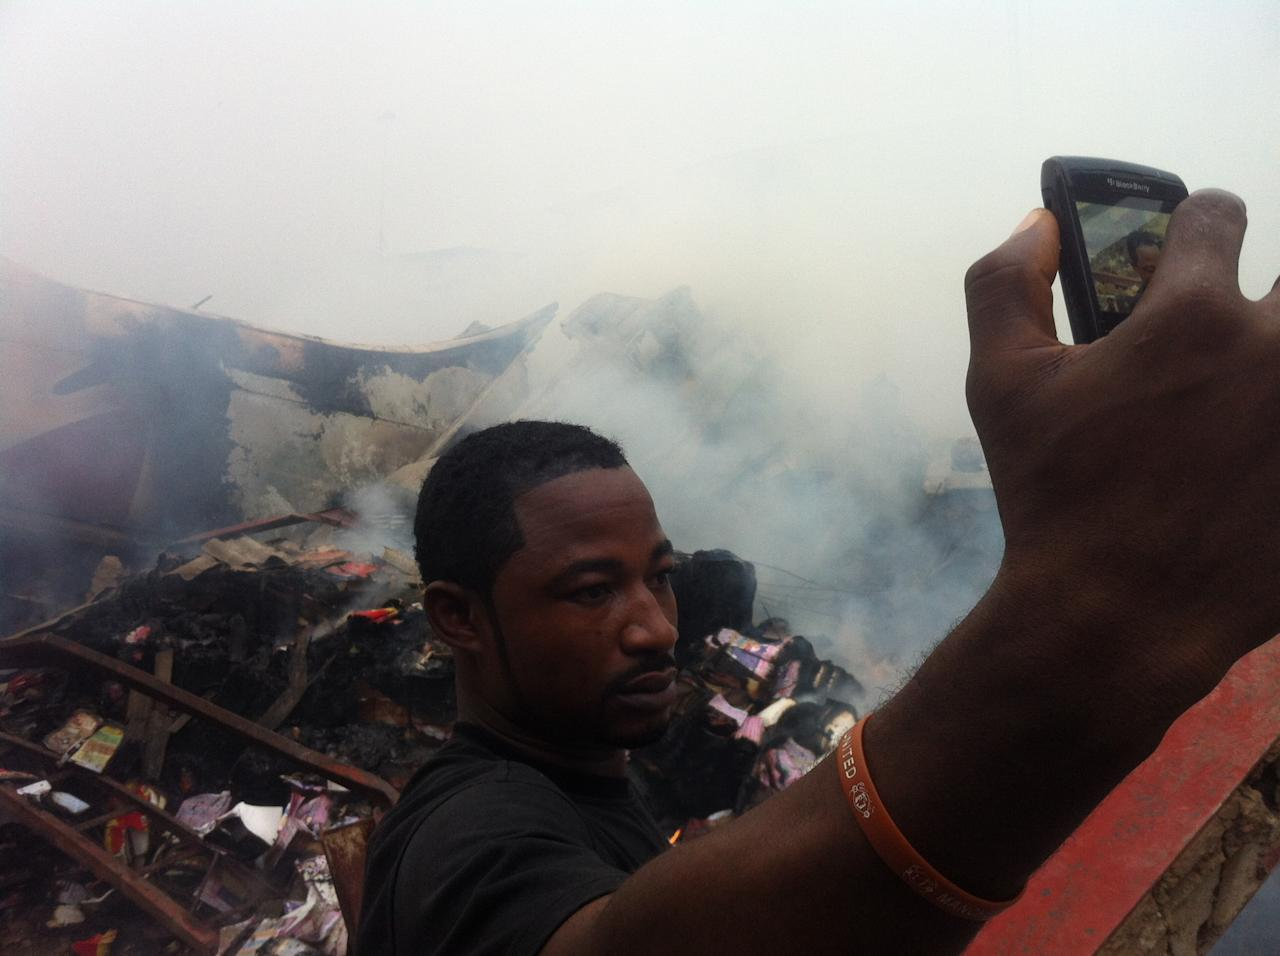 A man uses a cell phone to photograph himself in front of the wreckage of a passenger plane that crashed into buildings in a neighborhood just north of Murtala Muhammed International Airport, in Lagos, Nigeria, Sunday, June 3, 2012. The passenger plane carrying more than 150 people crashed in Nigeria's largest city on Sunday, government officials said. The Lagos state government said in a statement that 153 people were on the Dana Air flight Sunday.(AP Photo/Jon Gambrell)